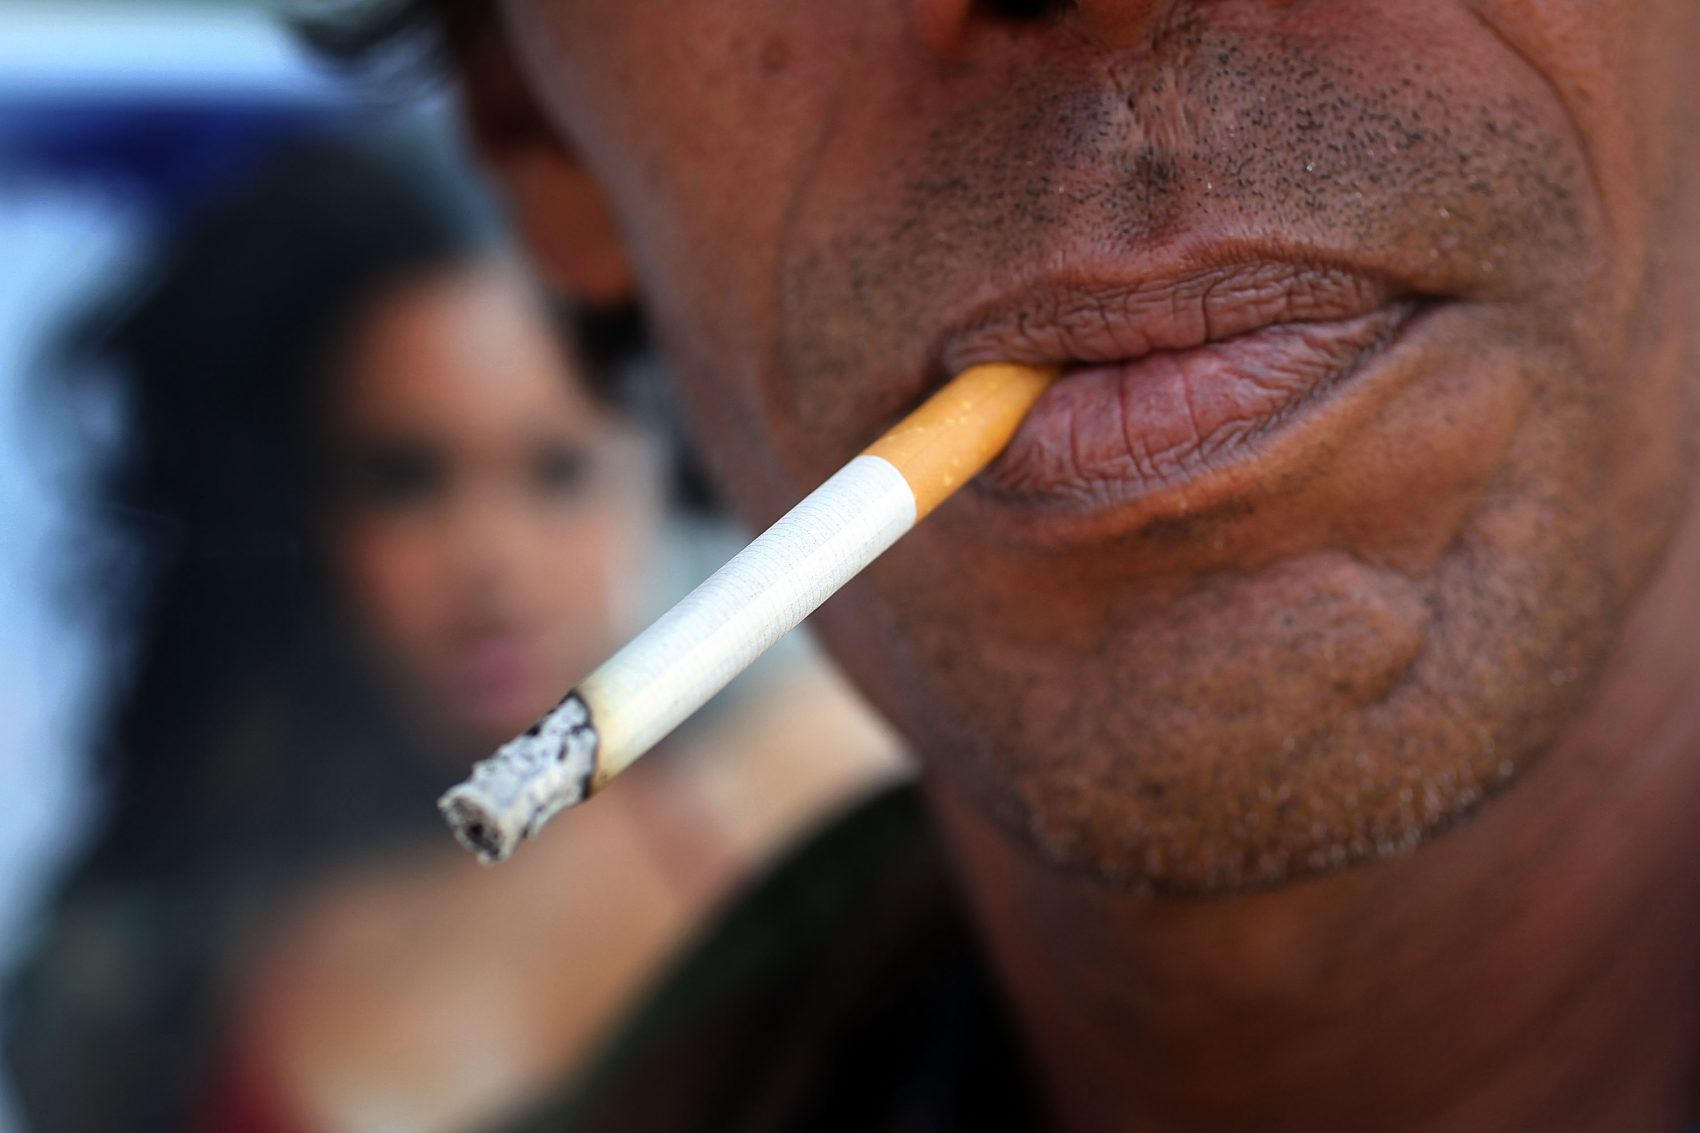 A man smokes a menthol cigarette in front of a Quick Stop store on March 30, 2010 in Miami. (Joe Raedle/Getty Images)